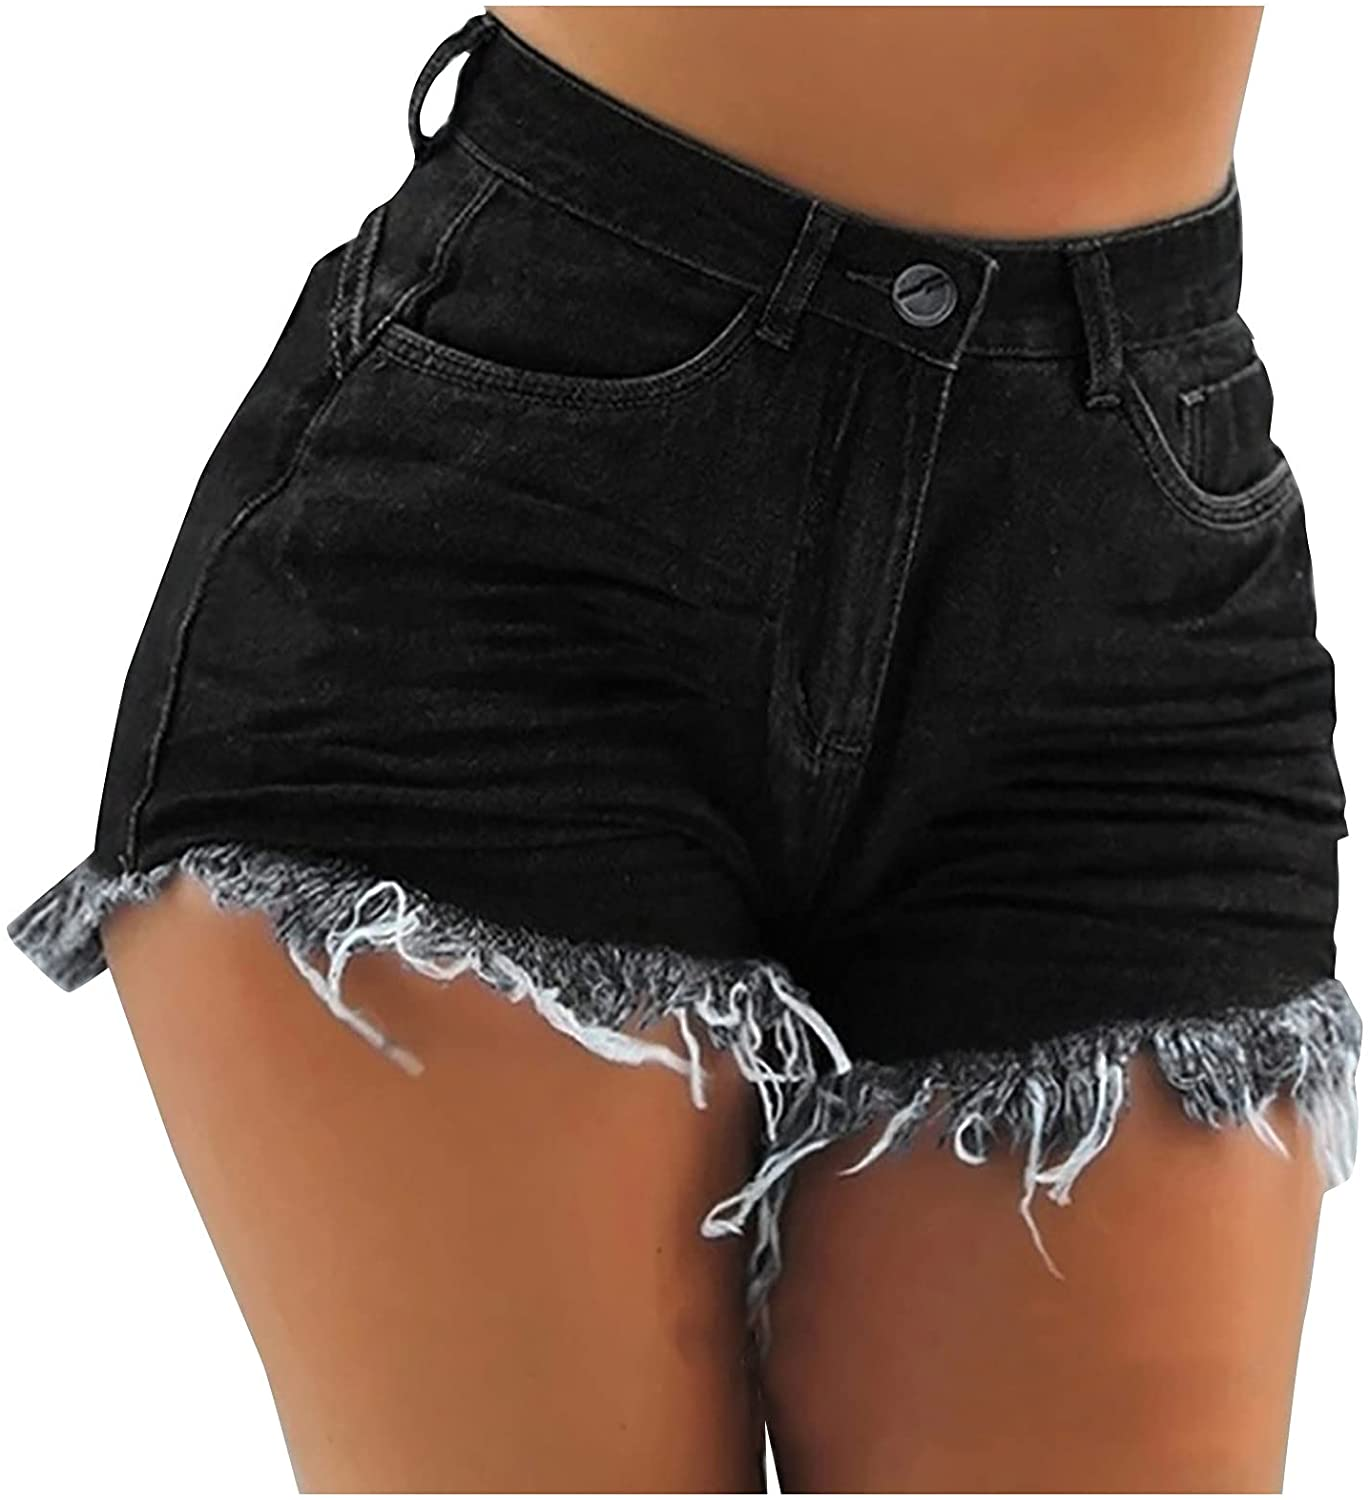 Euone_Clothes Jeans Pant for Women, Women's Casual Fashion High Waist Skinny Sexy Tassel Hole Denim Shorts